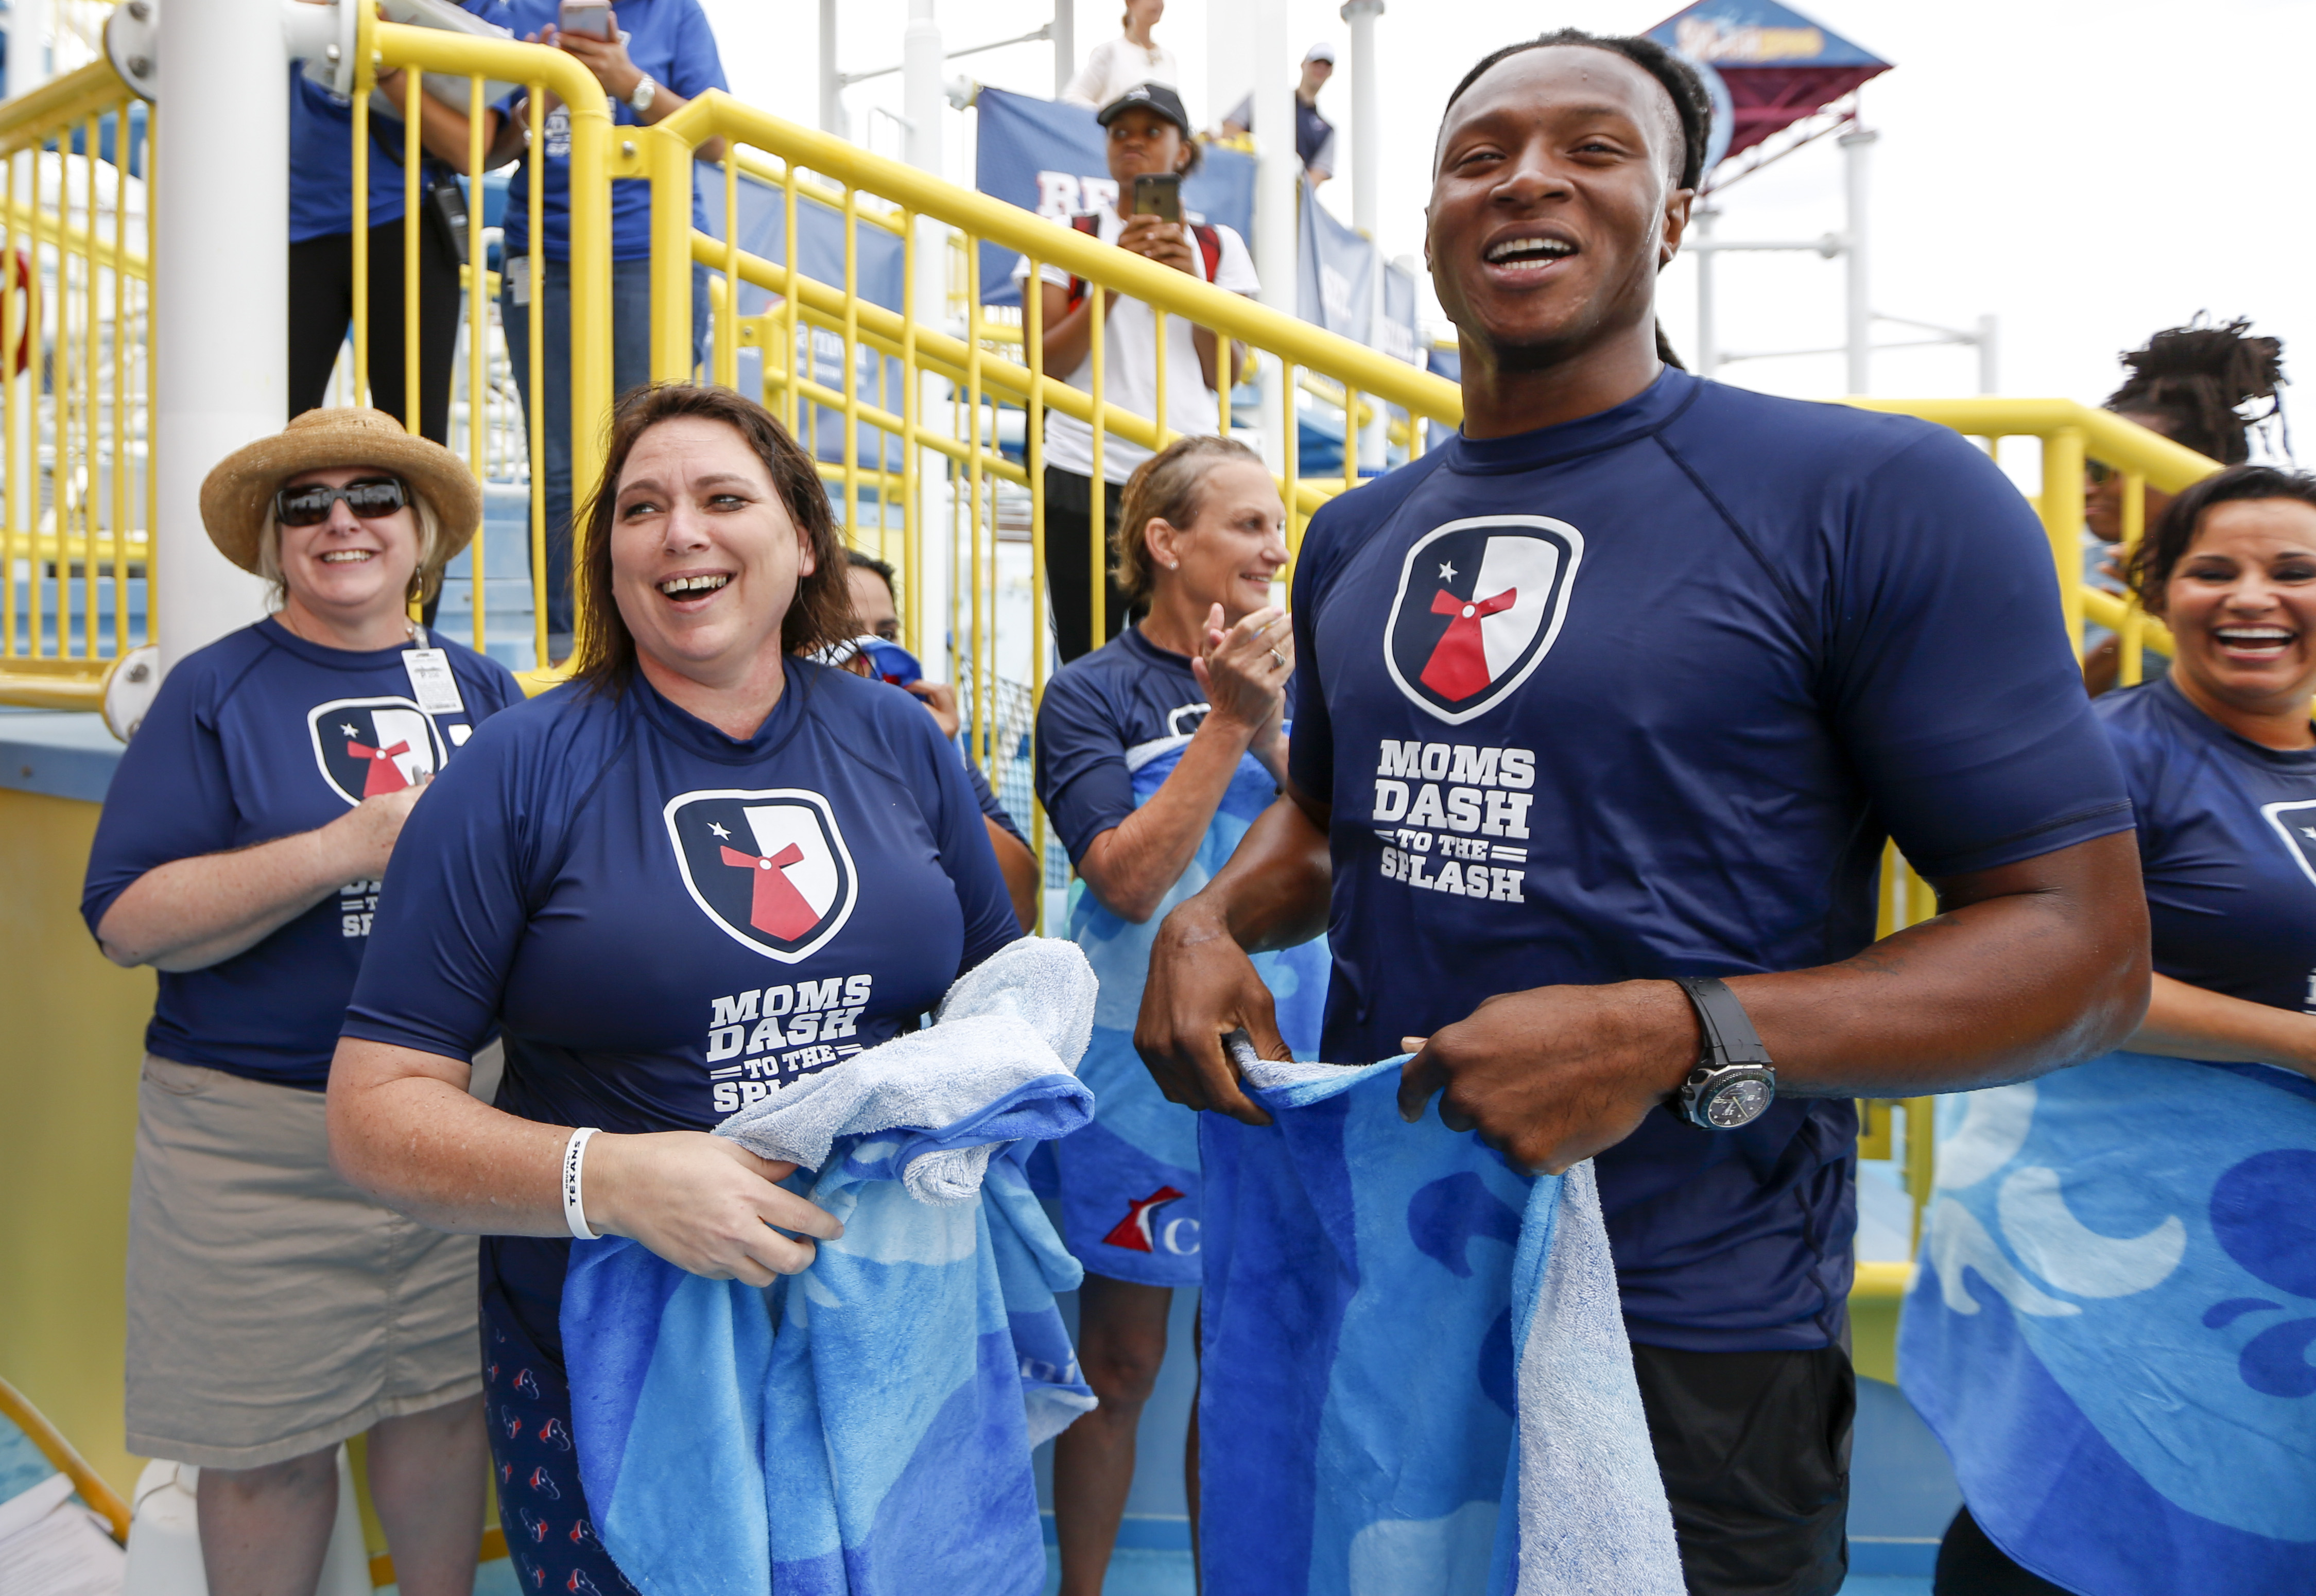 Galveston Arrival of Carnival Breeze Celebrated With Fun Mother's Day Event